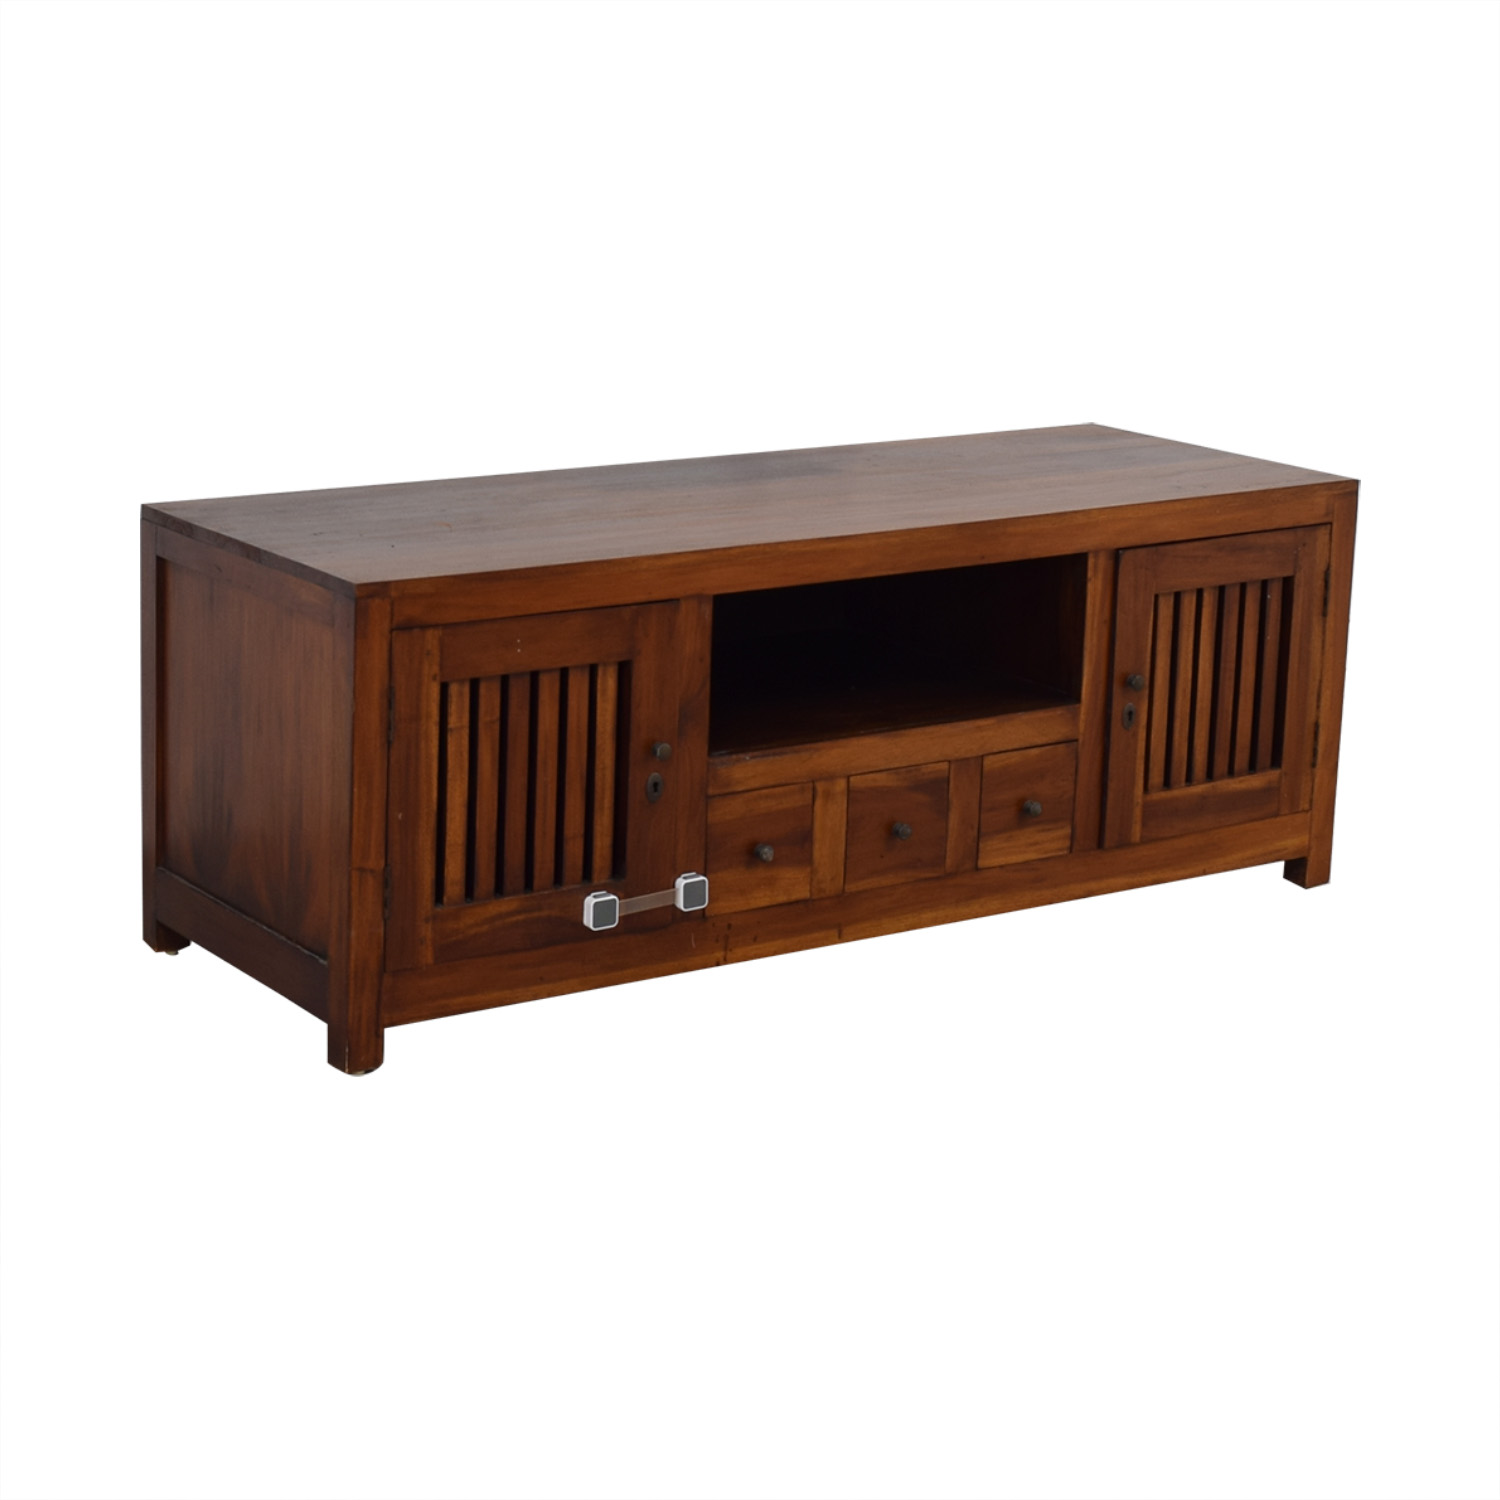 Teak Entertainment Center brown